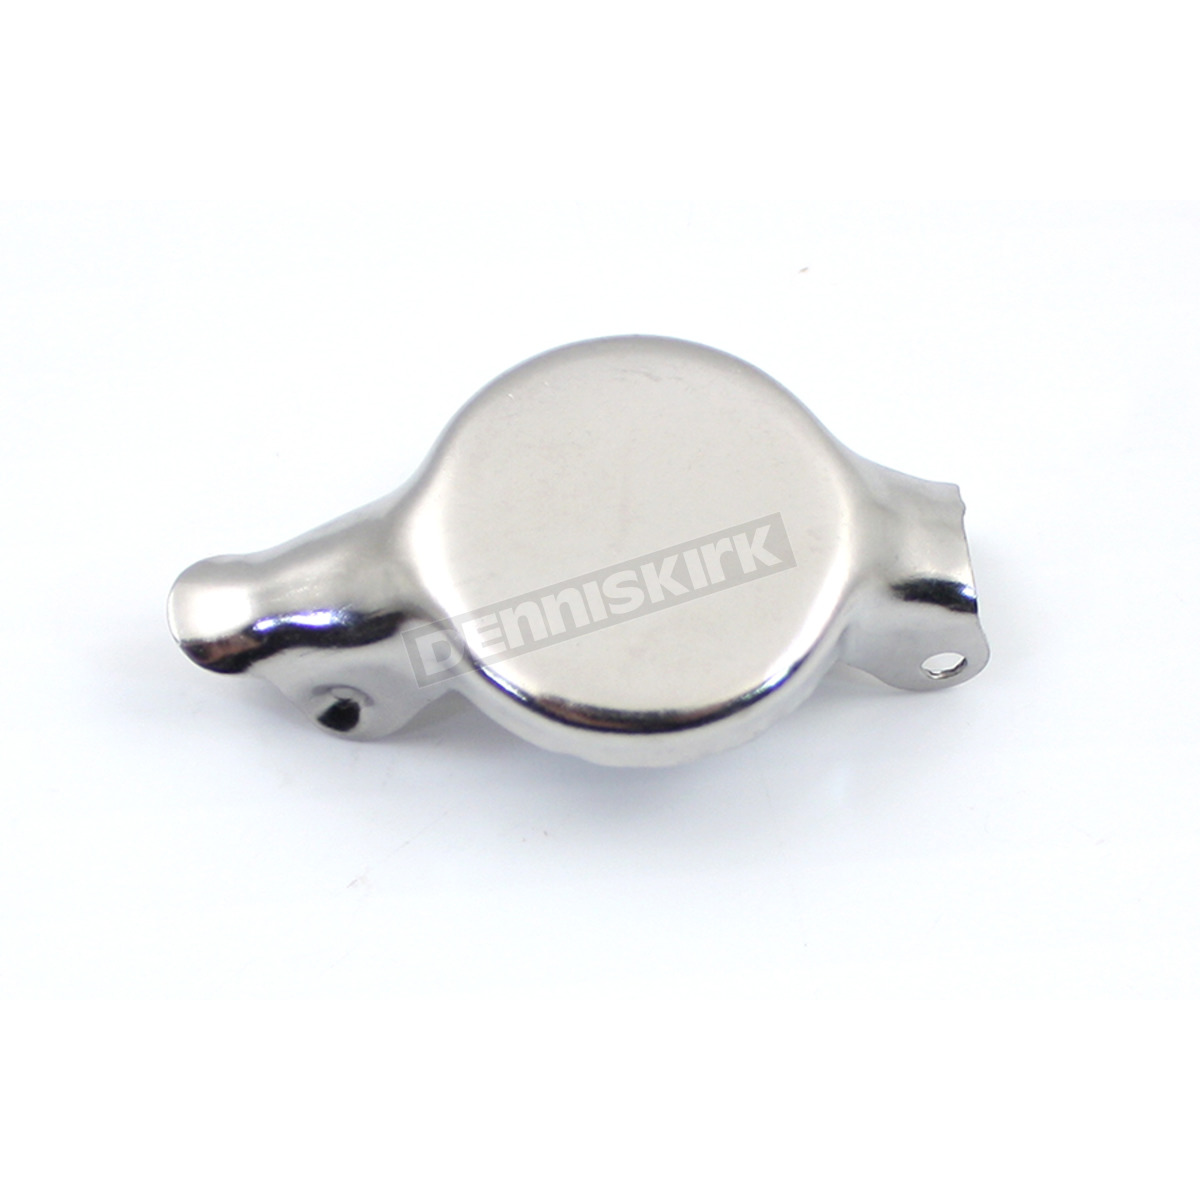 Chrome Ignition Switch Cover,for Harley Davidson,by V-Twin